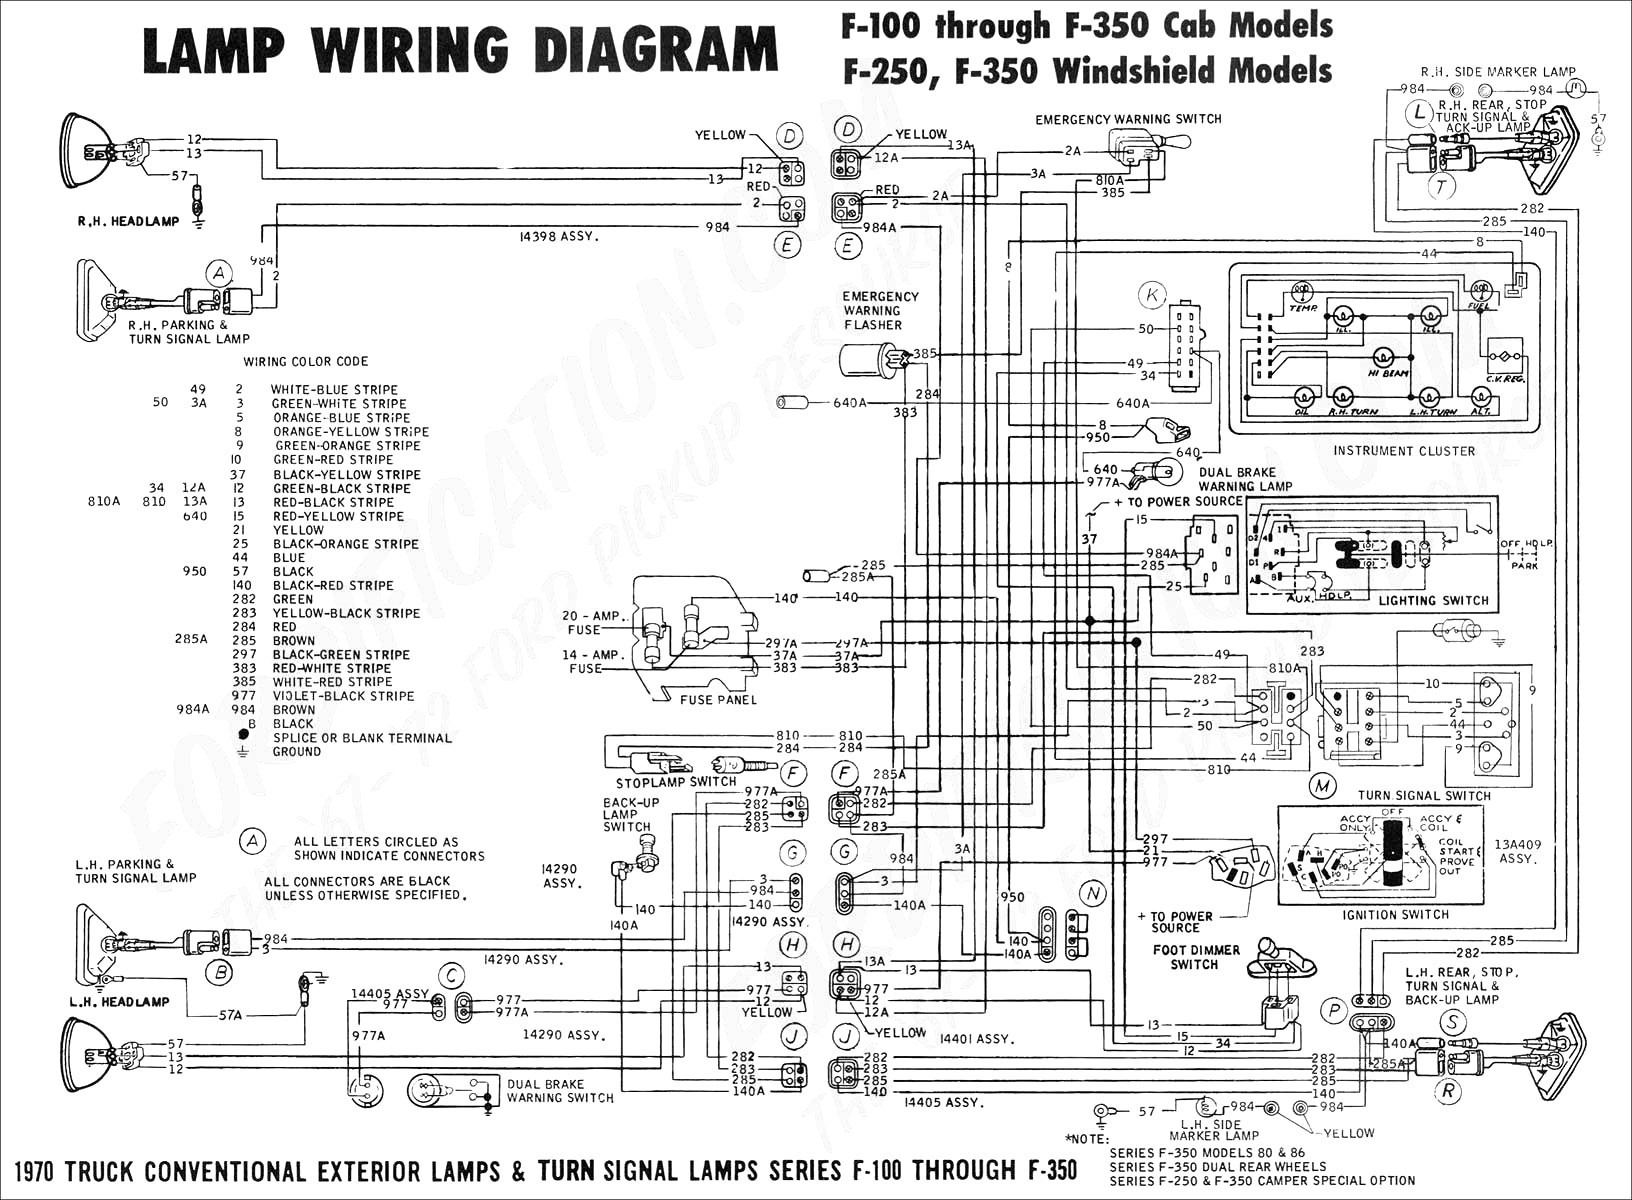 Ford 7 Pin Trailer Wiring Diagram - Wiring Diagram 500 Trailer Plug Wiring Pin Diagram on 7 prong trailer plug diagram, chevy 7 pin wiring diagram, fan clutch diagram, 50 amp rv outlet wiring diagram, ford 7 pin wiring diagram, 7 pin trailer lights wiring diagram, 7 pin trailer cord, 7 pin trailer jack wiring diagram, 7 round trailer plug diagram, 7 pin camper wiring diagram, dodge 7 pin wiring diagram, 7 pin trailer schematic, 7 rv plug diagram, 7 pin trailer wiring diagram pickup, 2008 ford escape radio wiring diagram, 1986 ford f150 fuel pump wiring diagram, 2003 chevy silverado radio wiring diagram, 7 pin tow wiring, outlets in series wiring diagram, 4 way trailer wiring diagram,